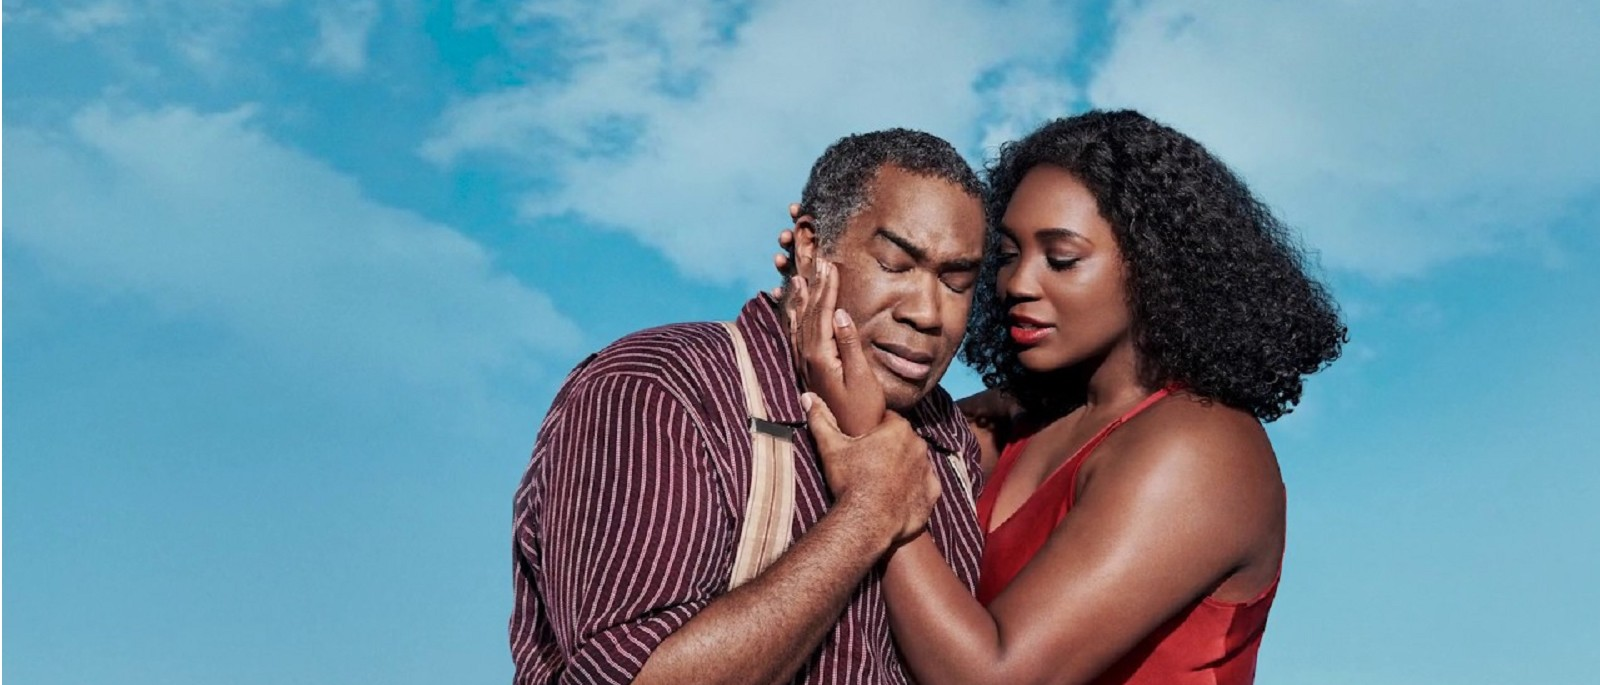 The Met Opera: Porgy and Bess